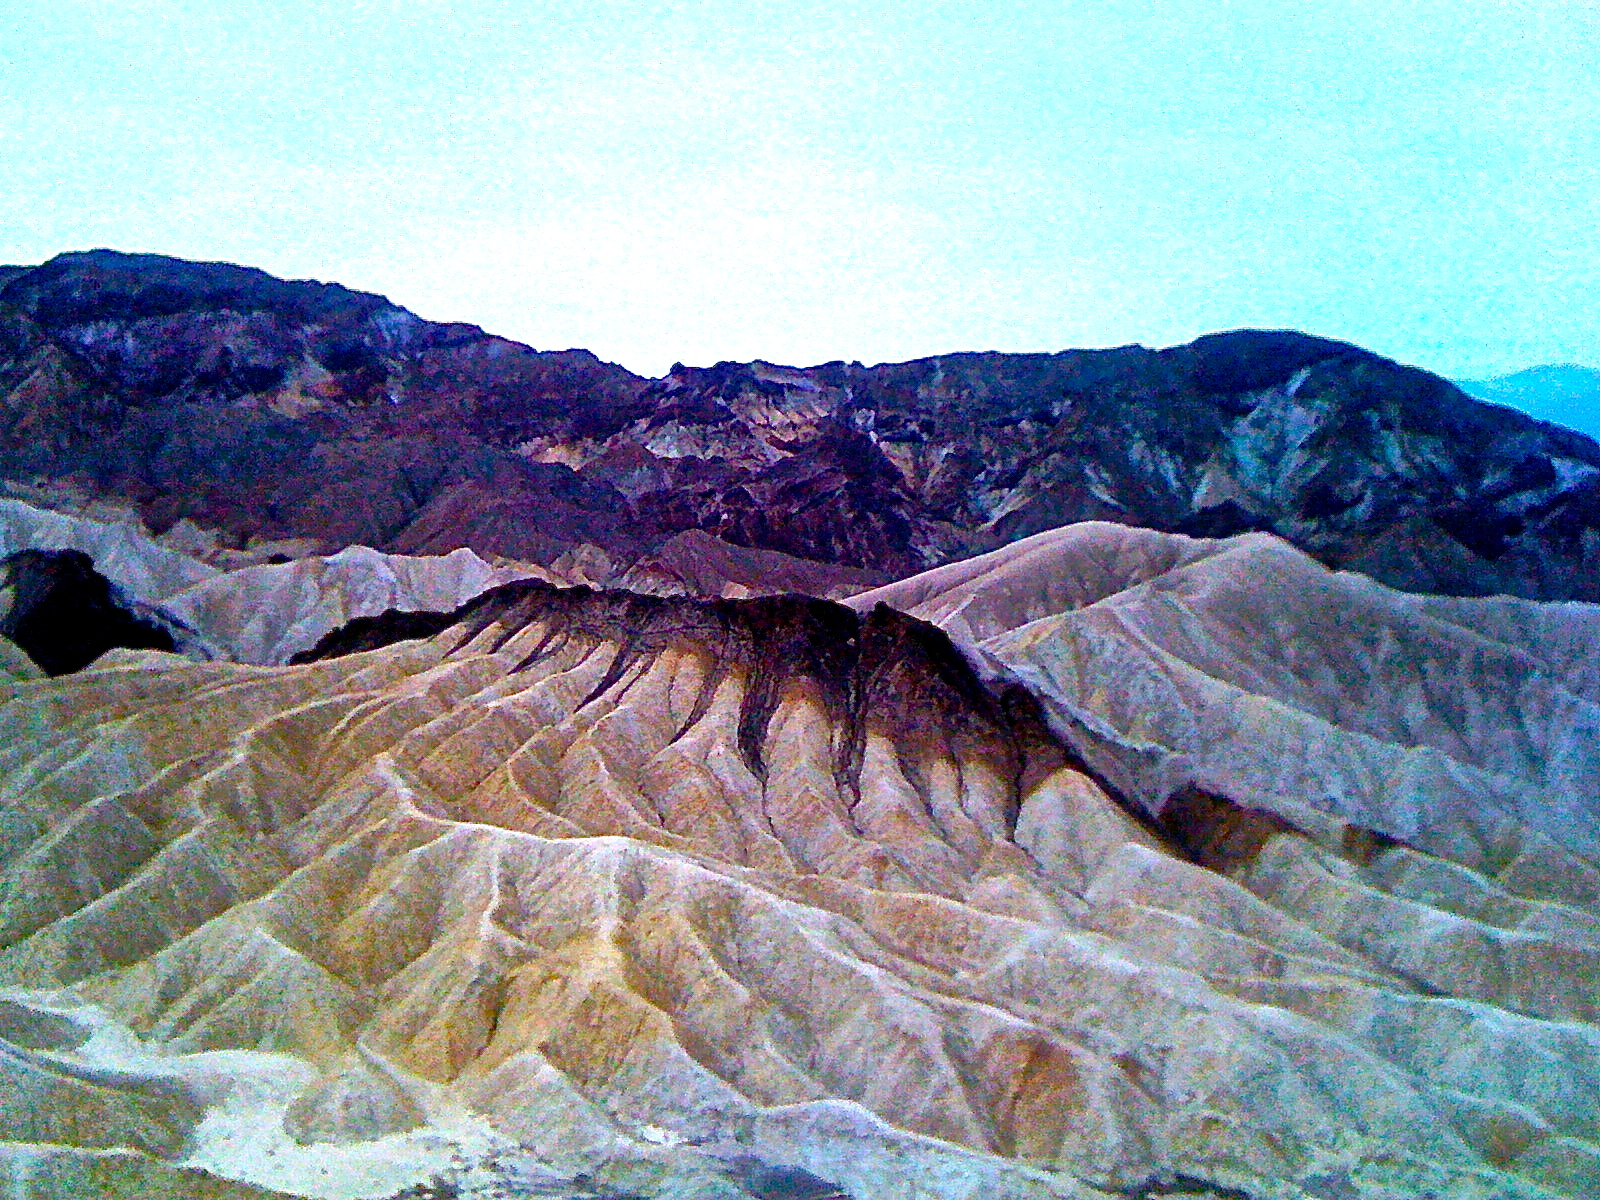 Part of the powerful temple in the Death Valley. Perfectly crafted by nature.